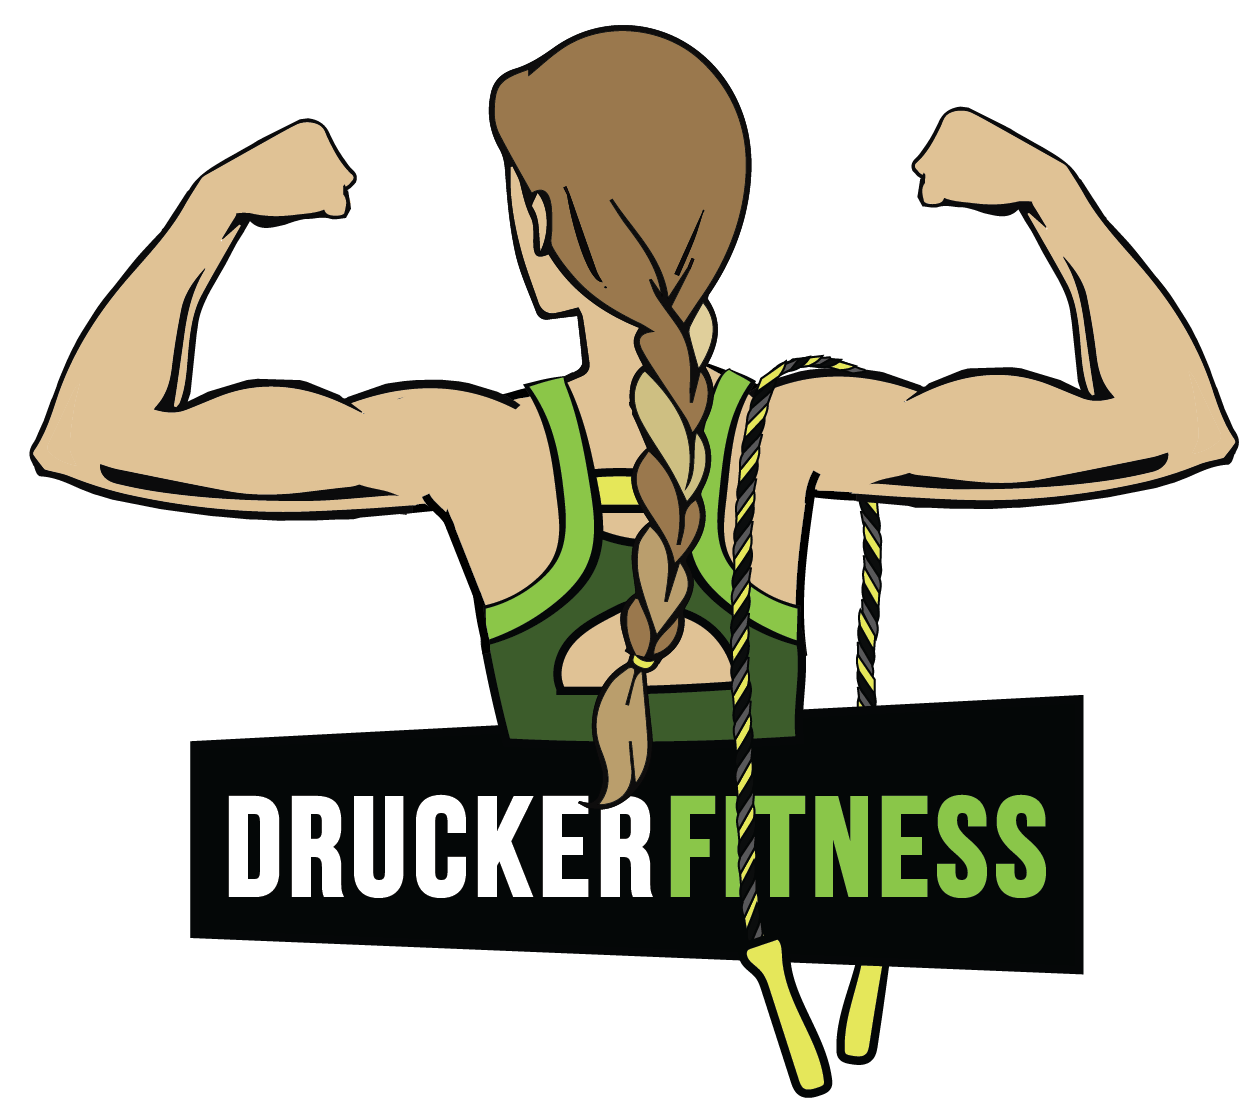 Gym clipart muscular strength. About gabby drucker fitness